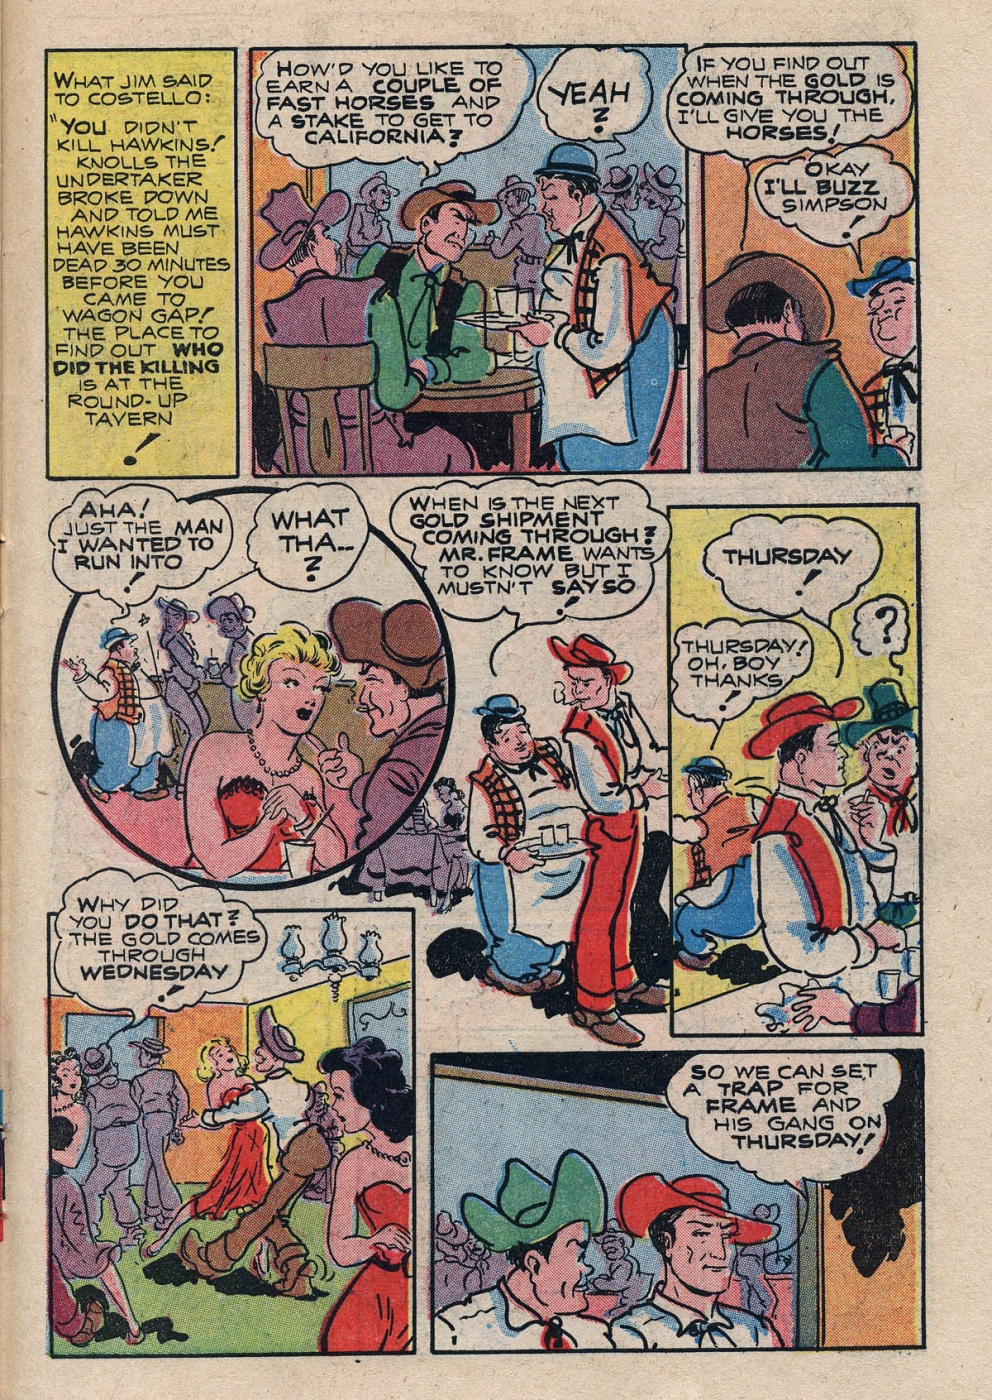 Funny Comic Strips - Abbott and Costello 001 (Feb 1948) 27